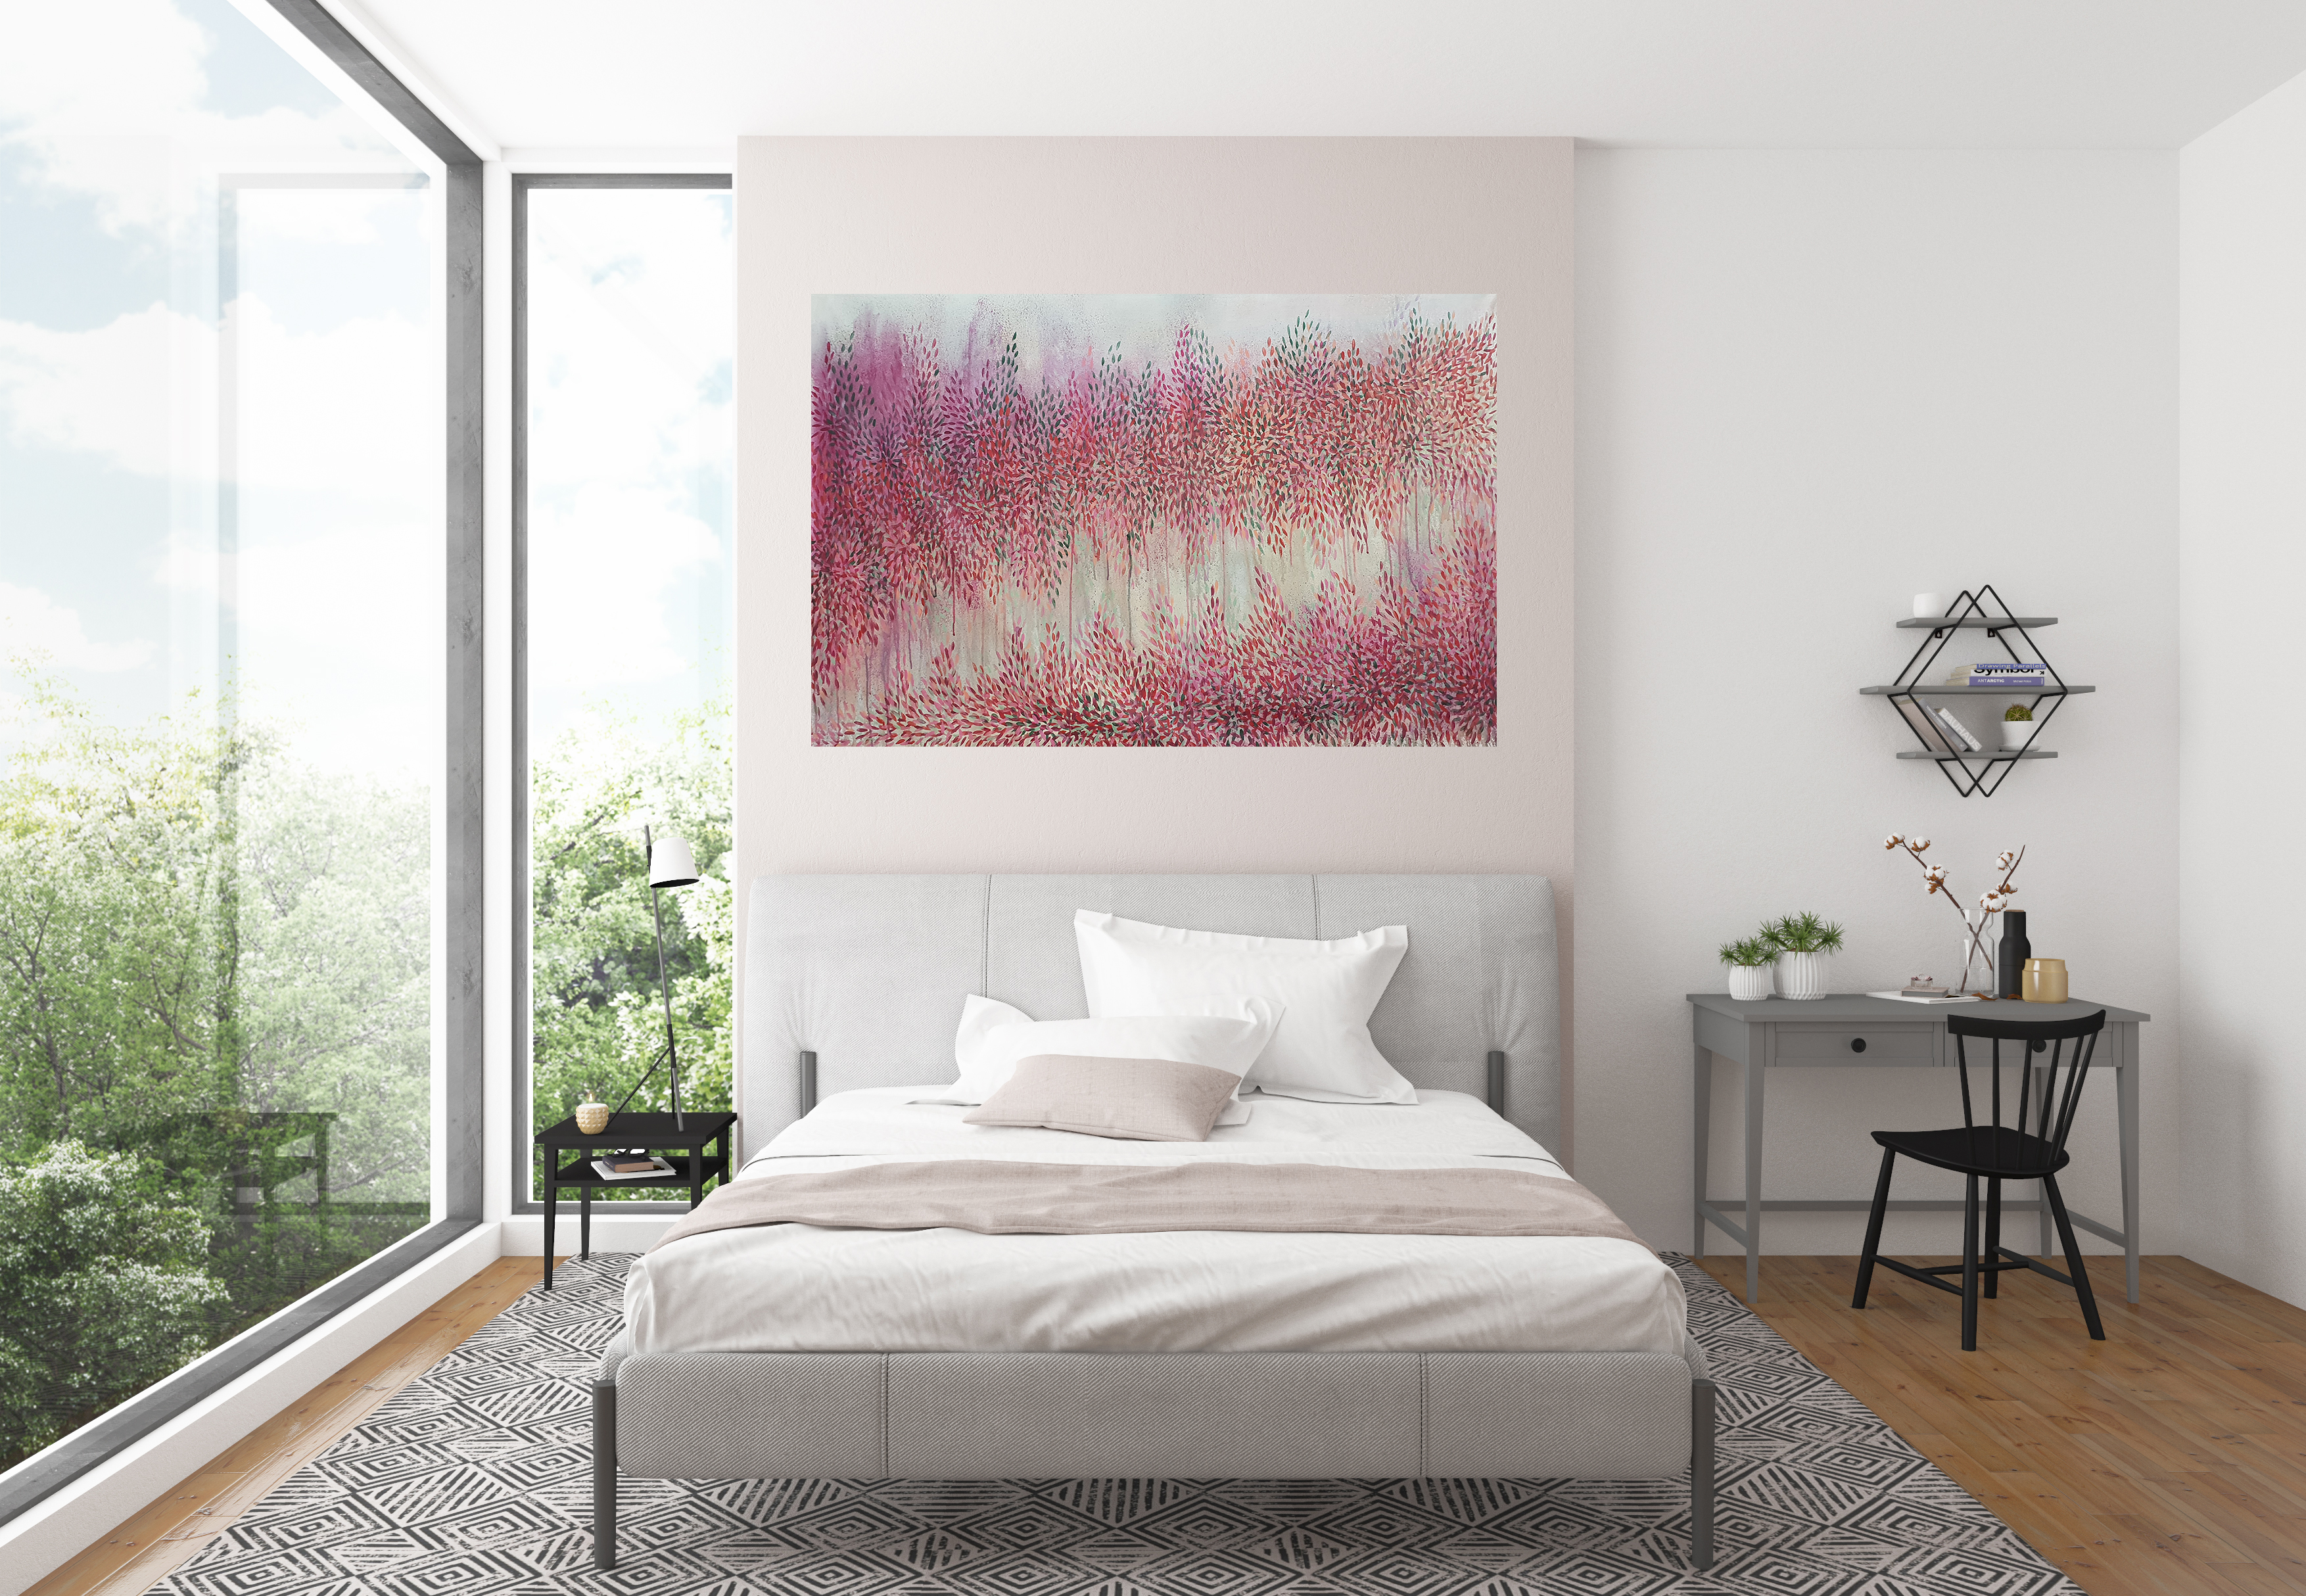 Artist Leni Kae Interior Design Bedroom 2 All We Need In Heart Pink Red Abstract Landscape Art